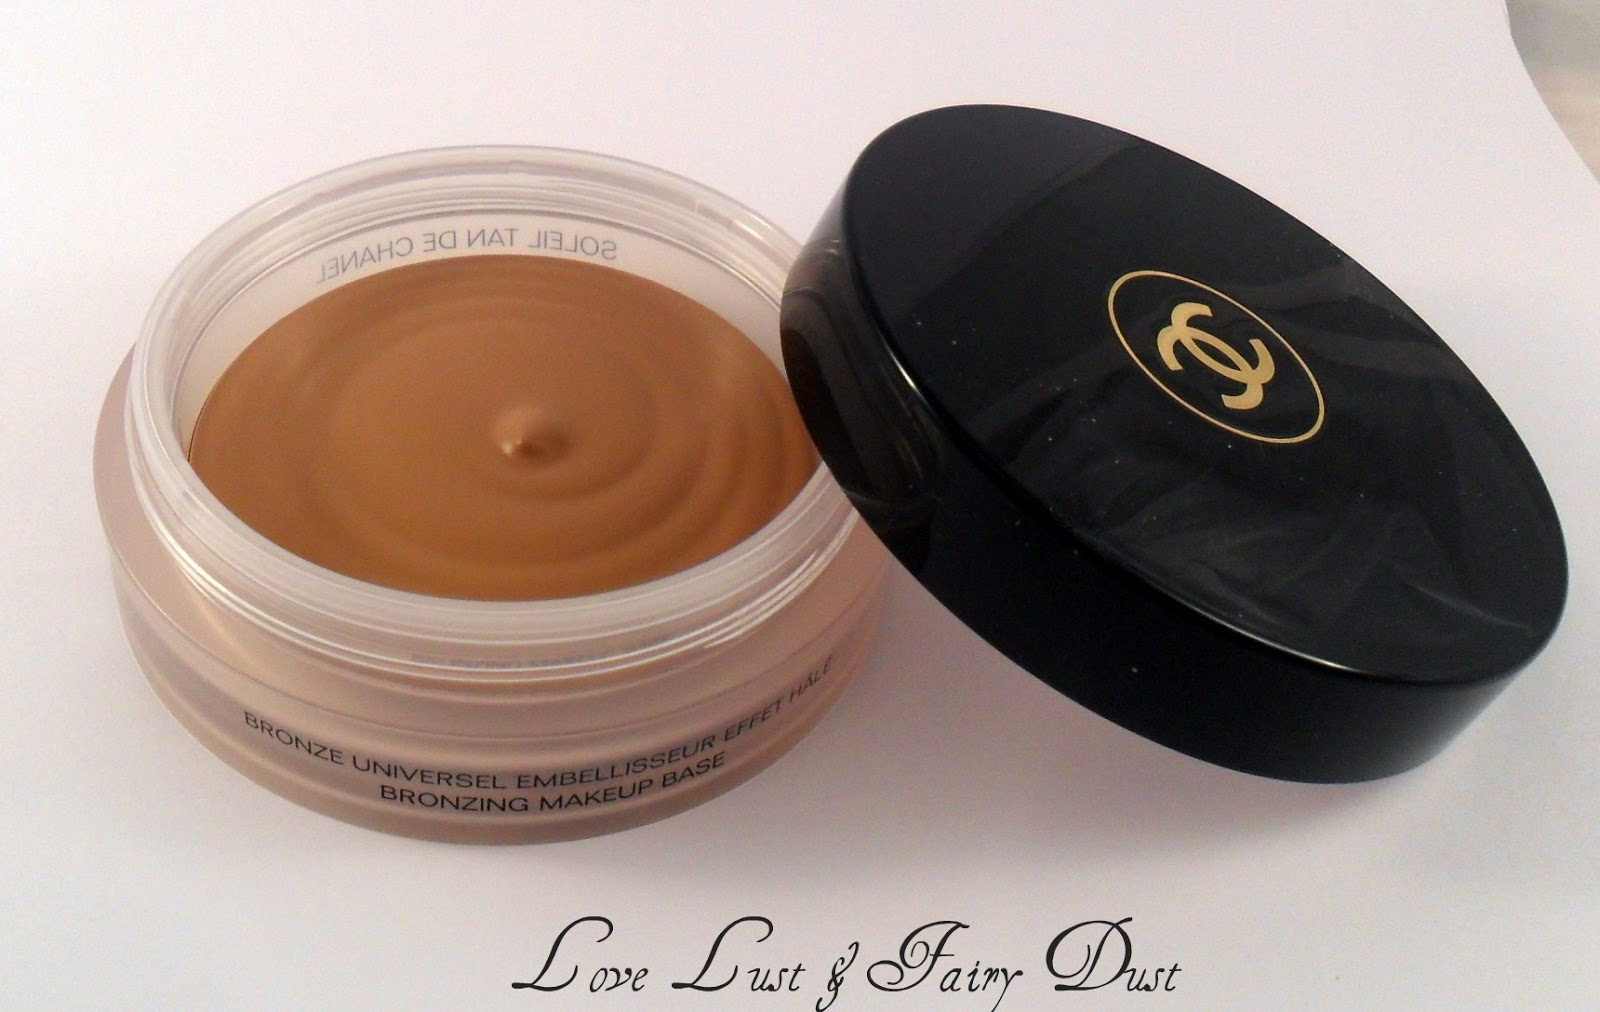 Chanel Bronze Universel Soleil Tan De Chanel review